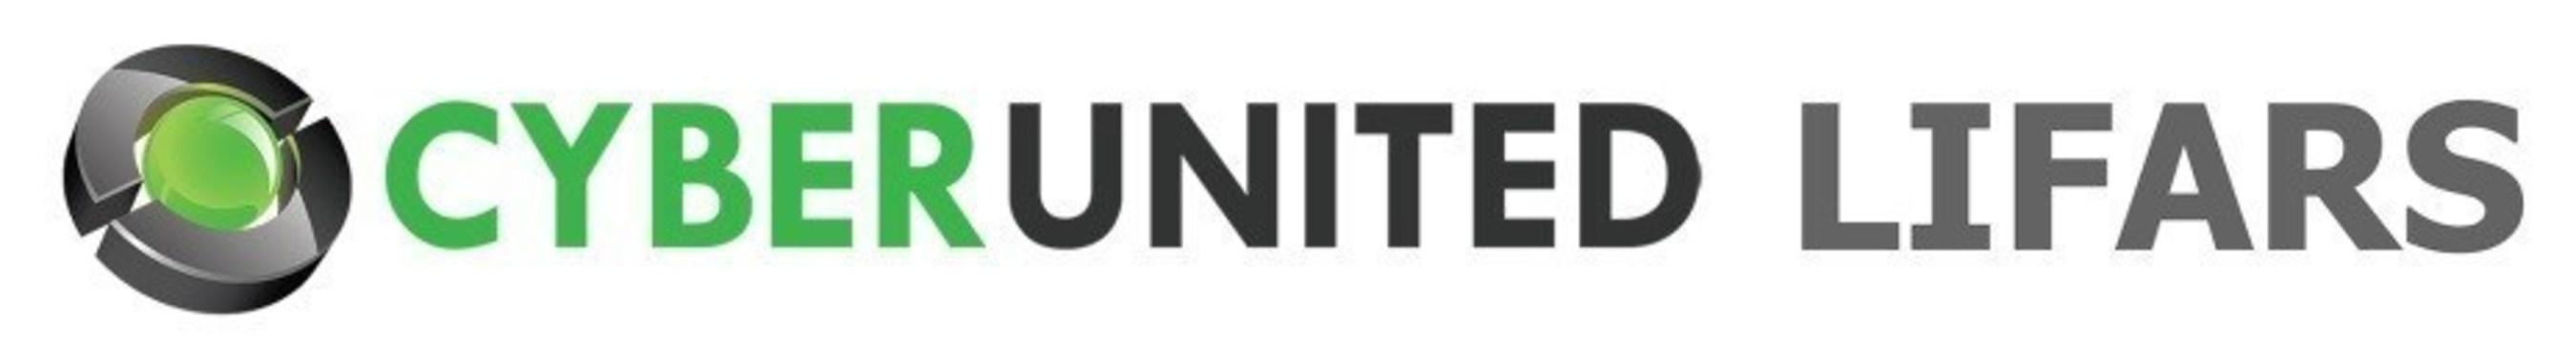 CyberUnited and LIFARS Joint Venture